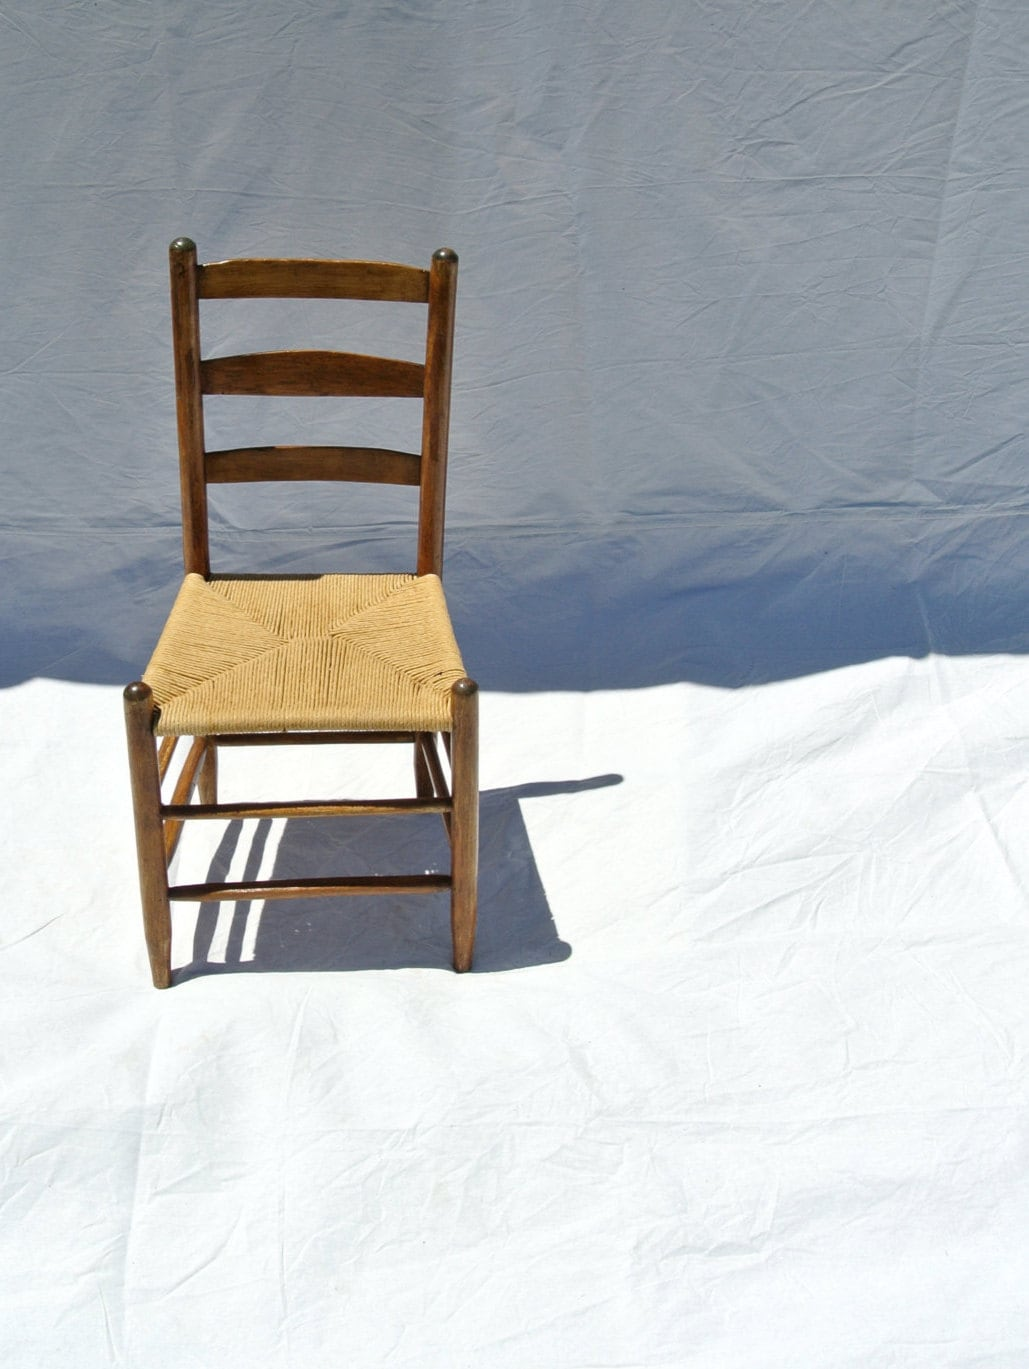 Antique Rustic Ladder Back Chair Small with Woven Rush Seat